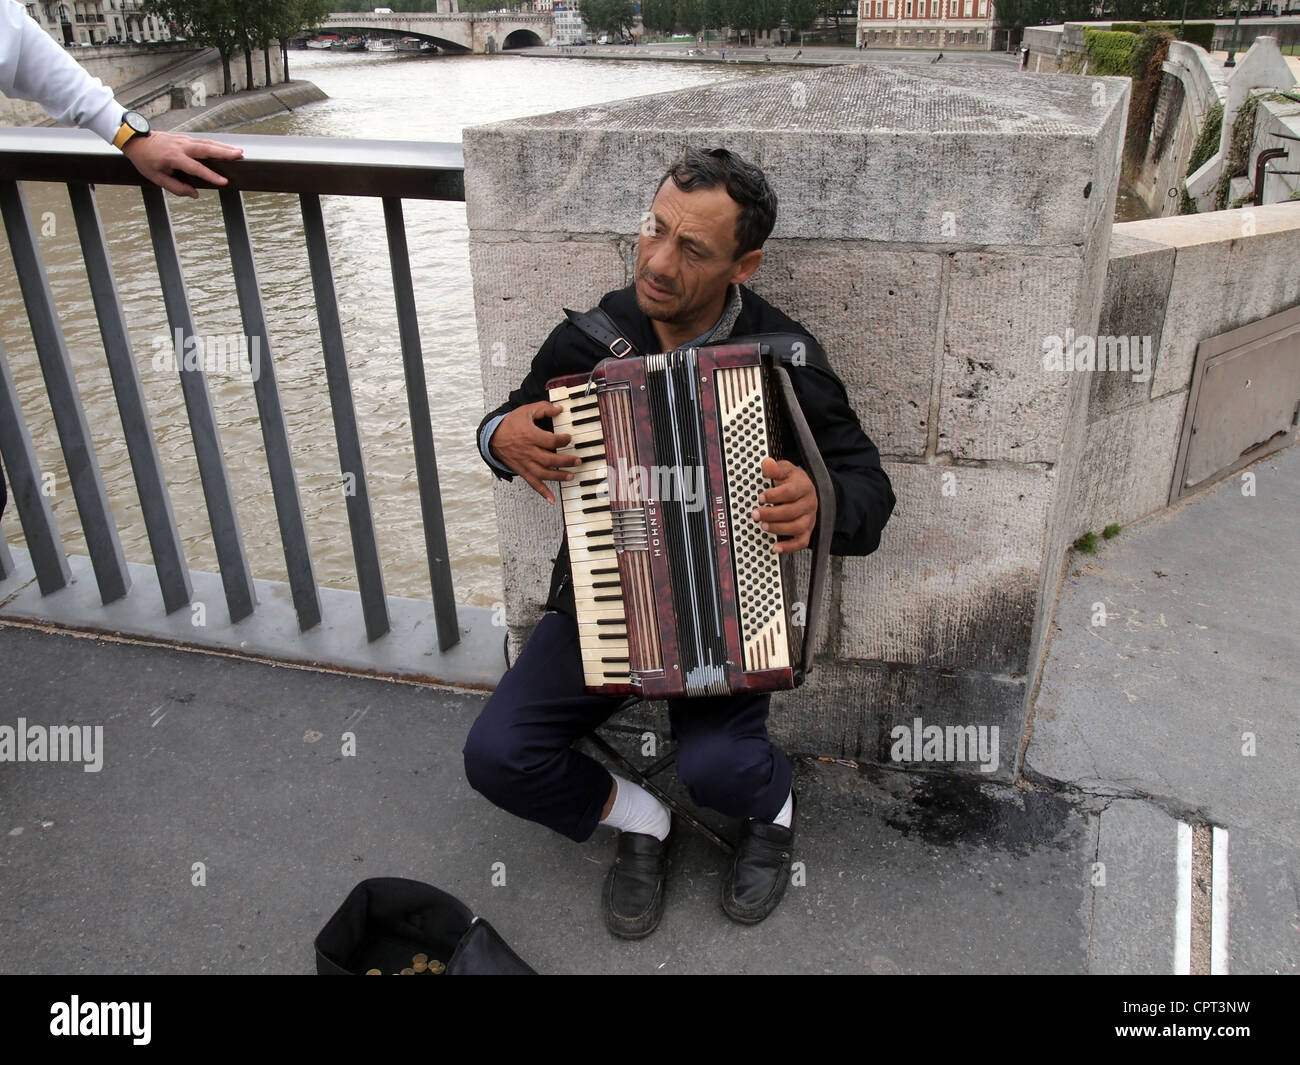 Street musician playing accordion on the Pont Saint-Louis in Paris, France, May 10, 2012, © Katharine Andriotis - Stock Image